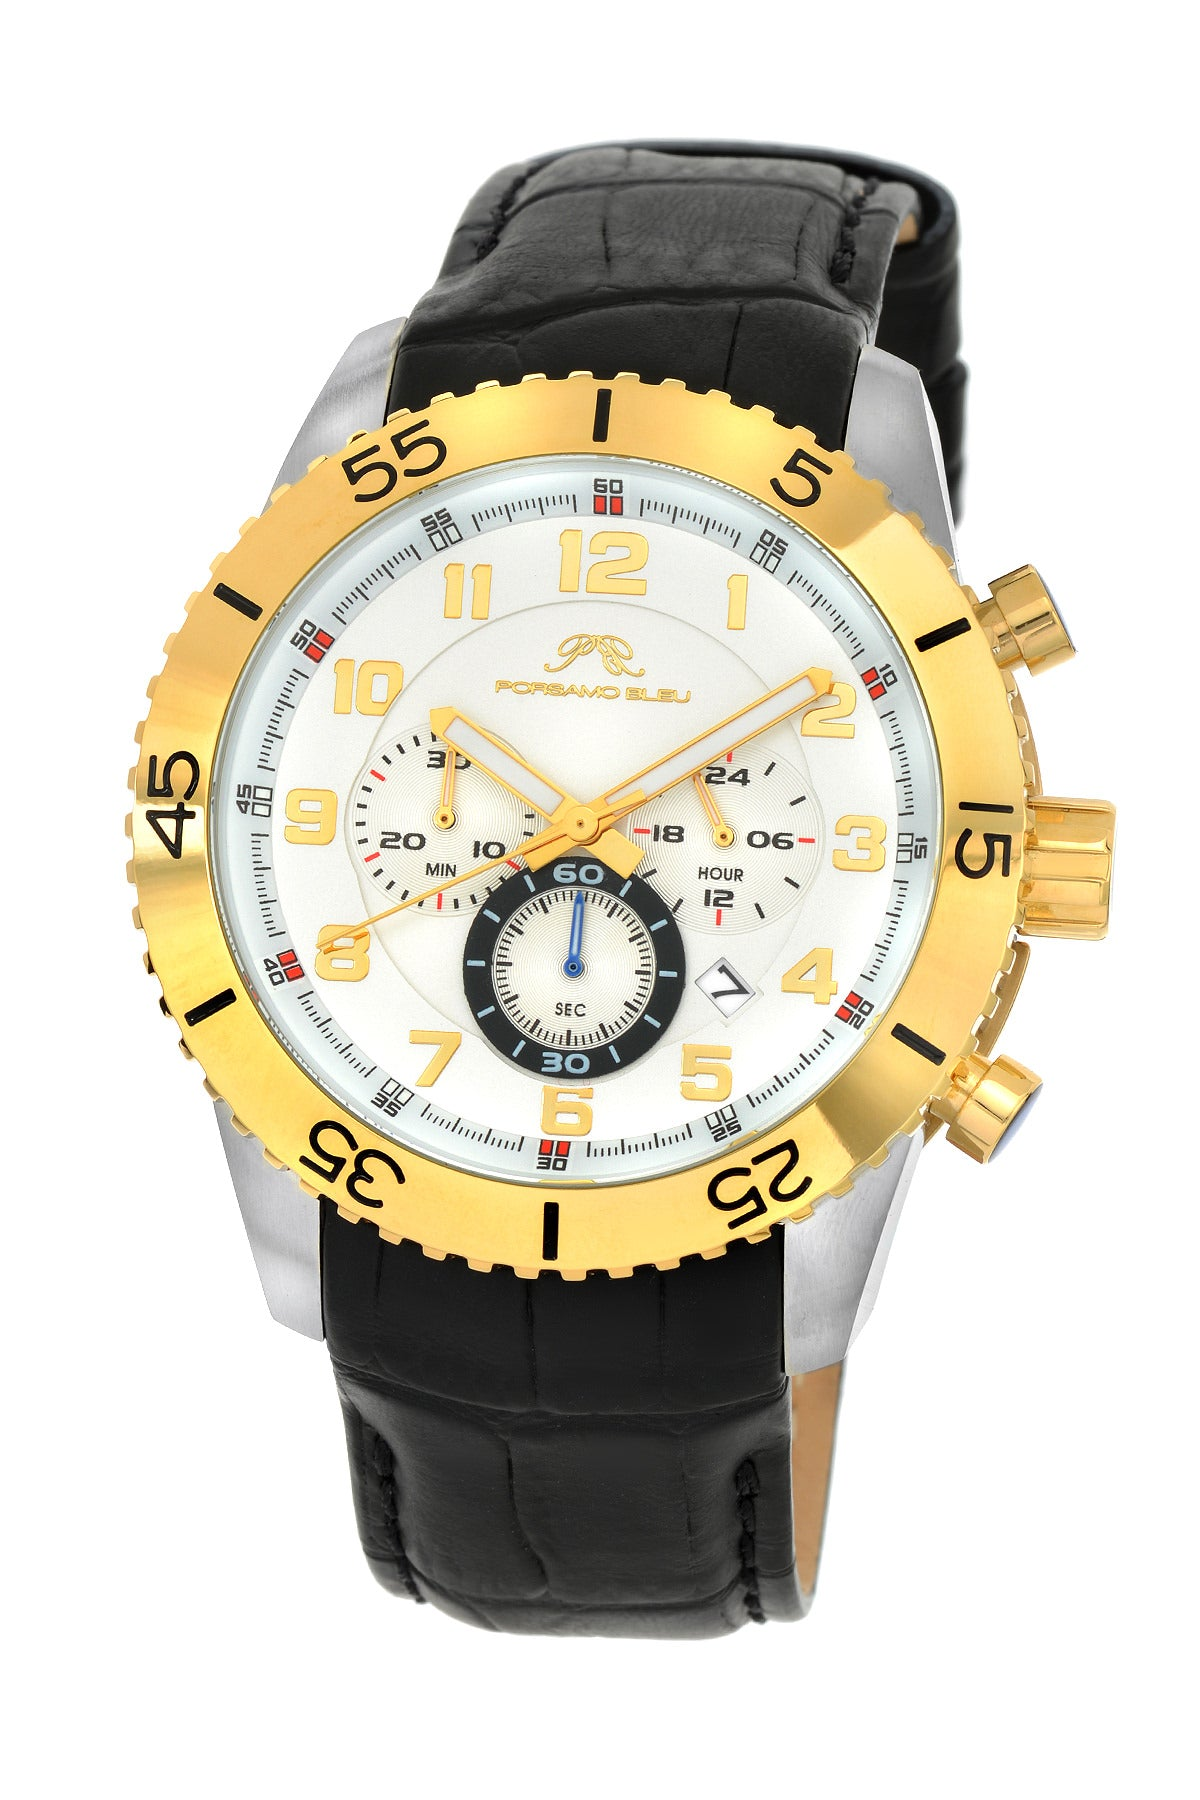 Porsamo Bleu Tristan luxury chronograph men's watch, genuine leather band, gold, silver, black 591CTRL